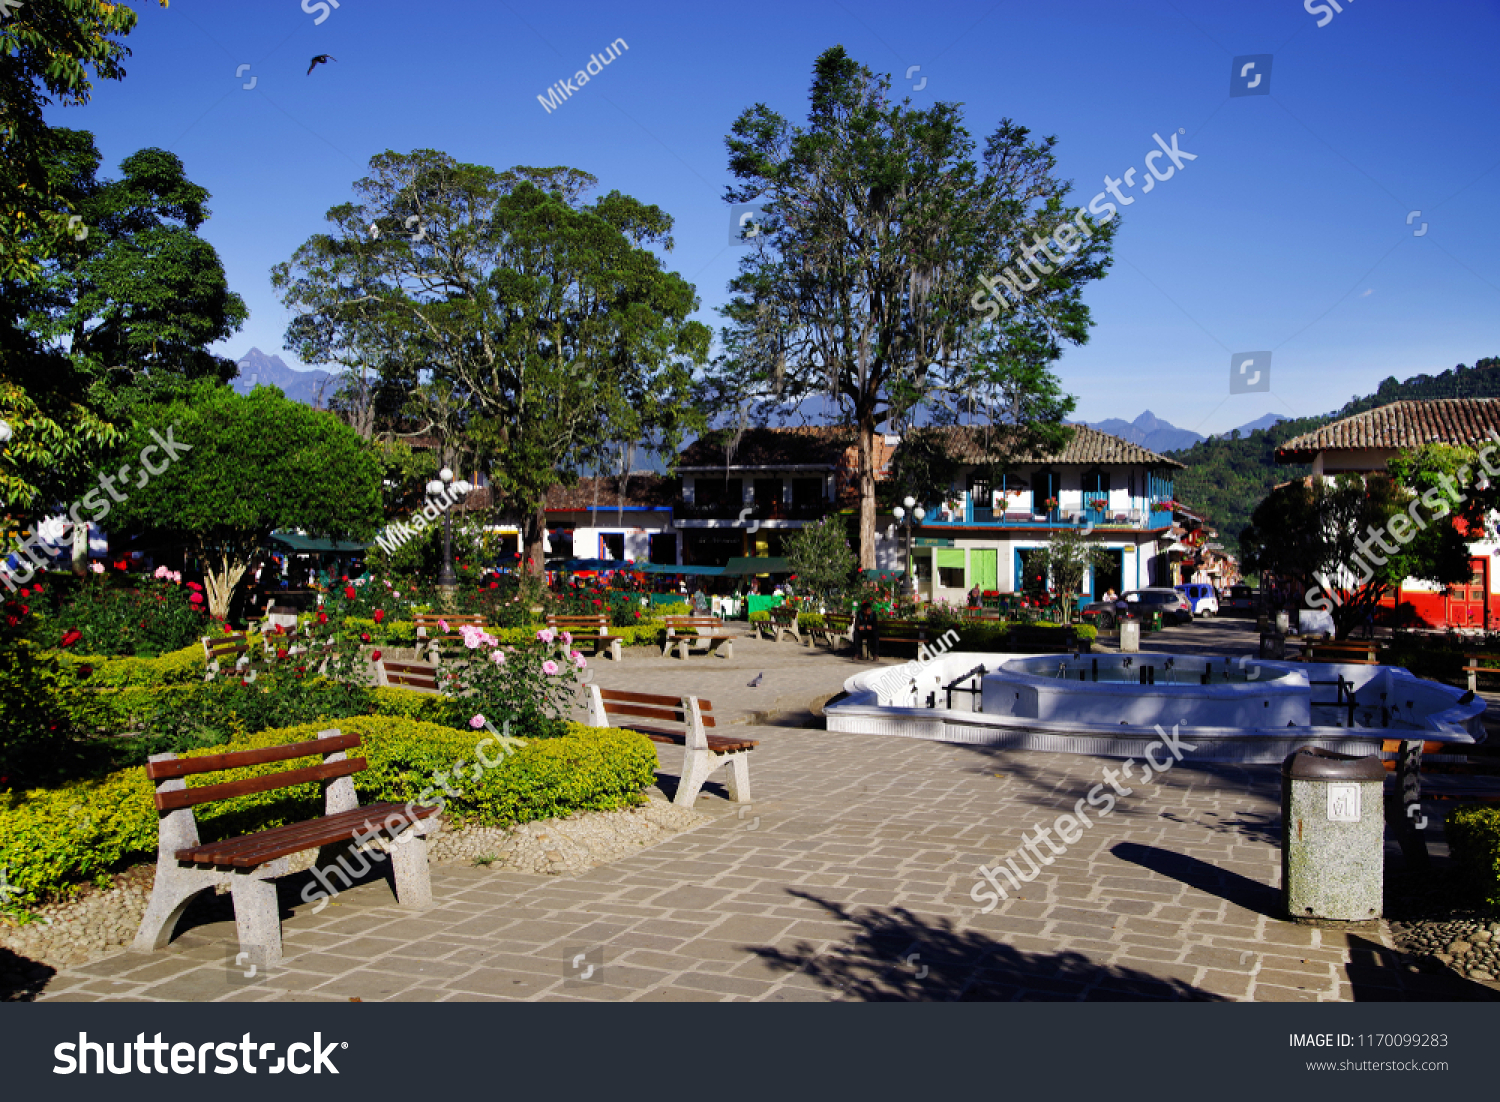 Jardin Colombia August 14 2018 Trdaitional Stock Photo Edit Now